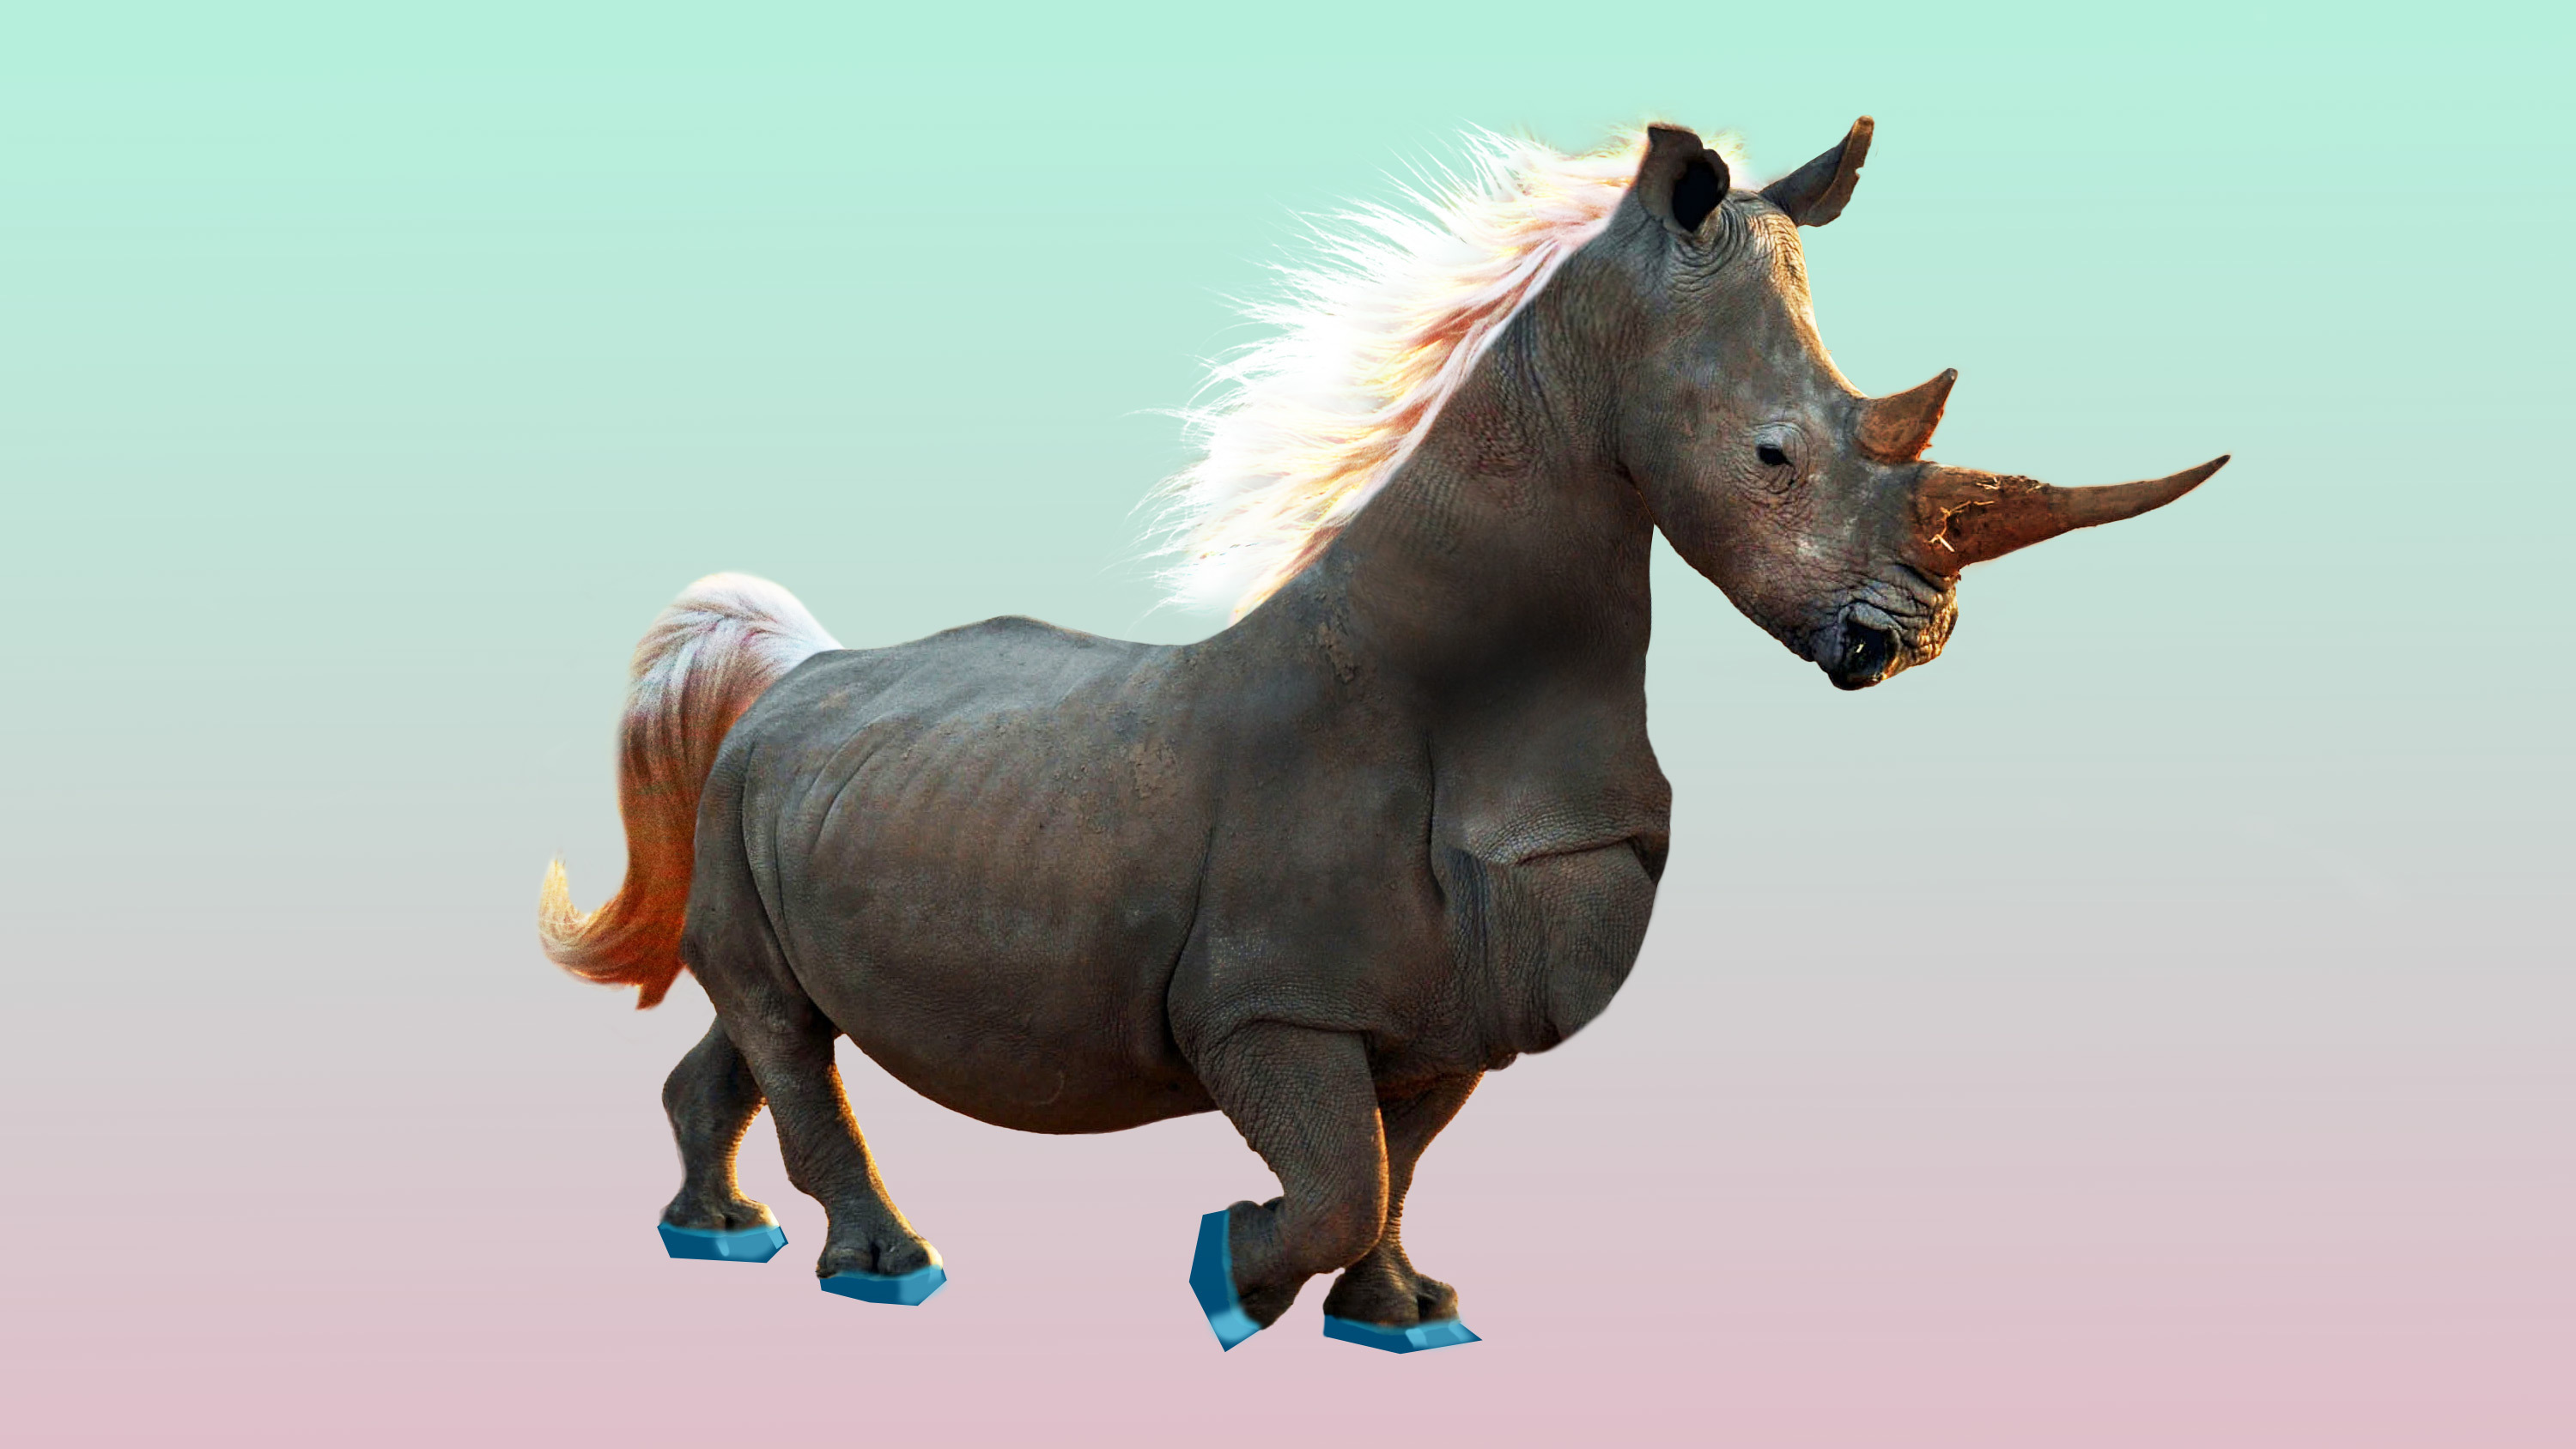 A rhinocorn -- a cross between a rhino and unicorn.